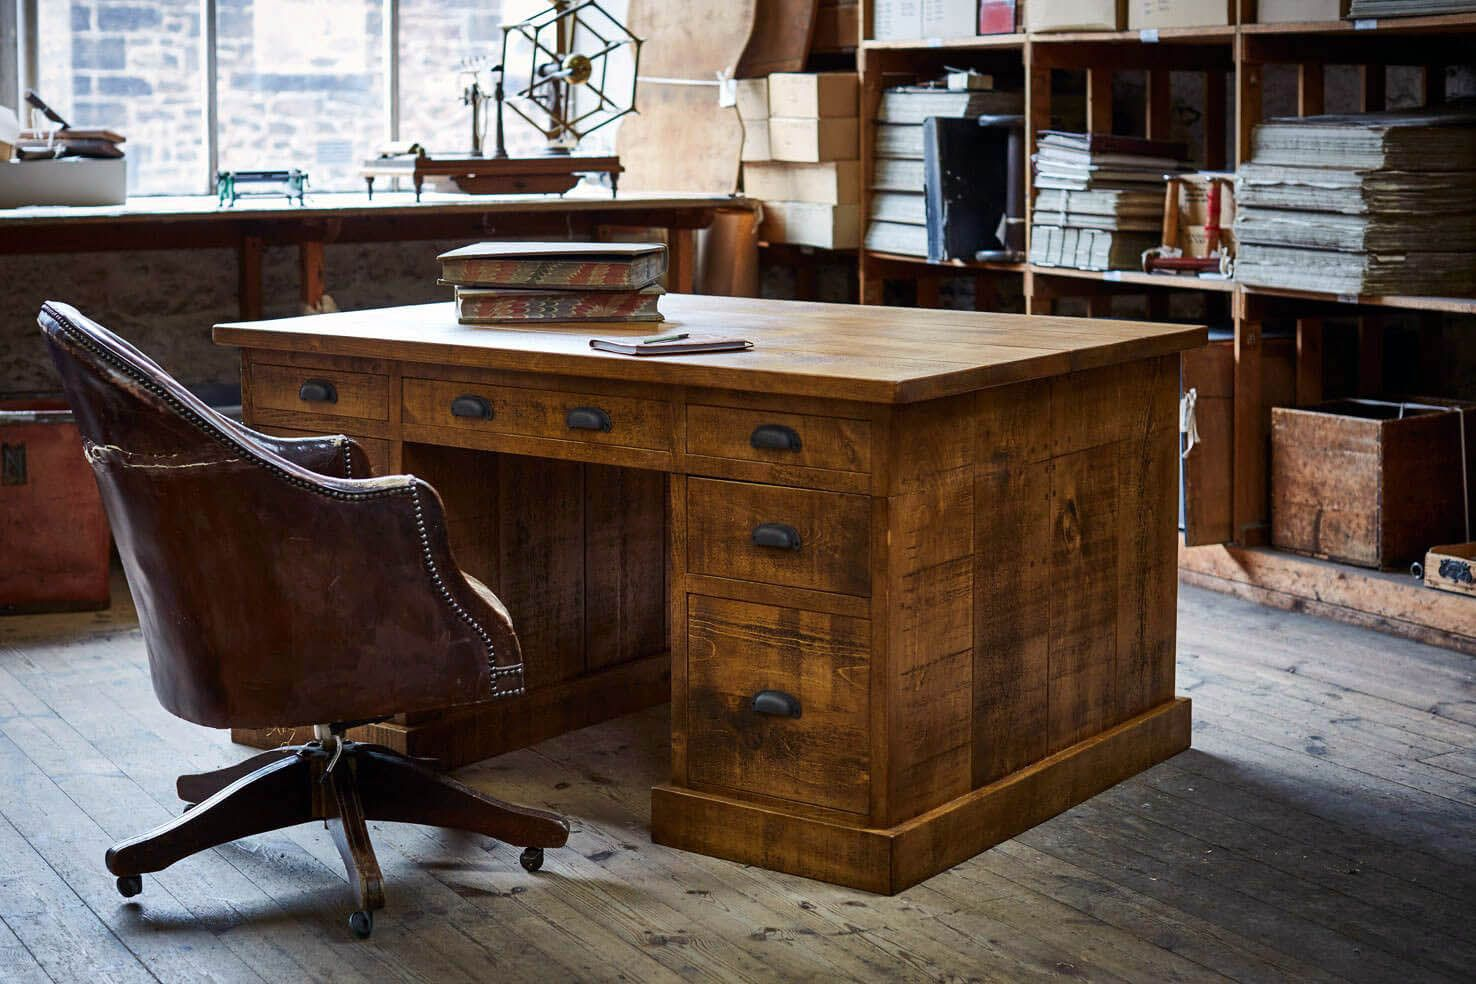 Extraordinary Solid Wooden Desks For Sale Cape Town Just On Planet Home Decor Classic Wood Desk Solid Wood Desk Wood Desk Chair